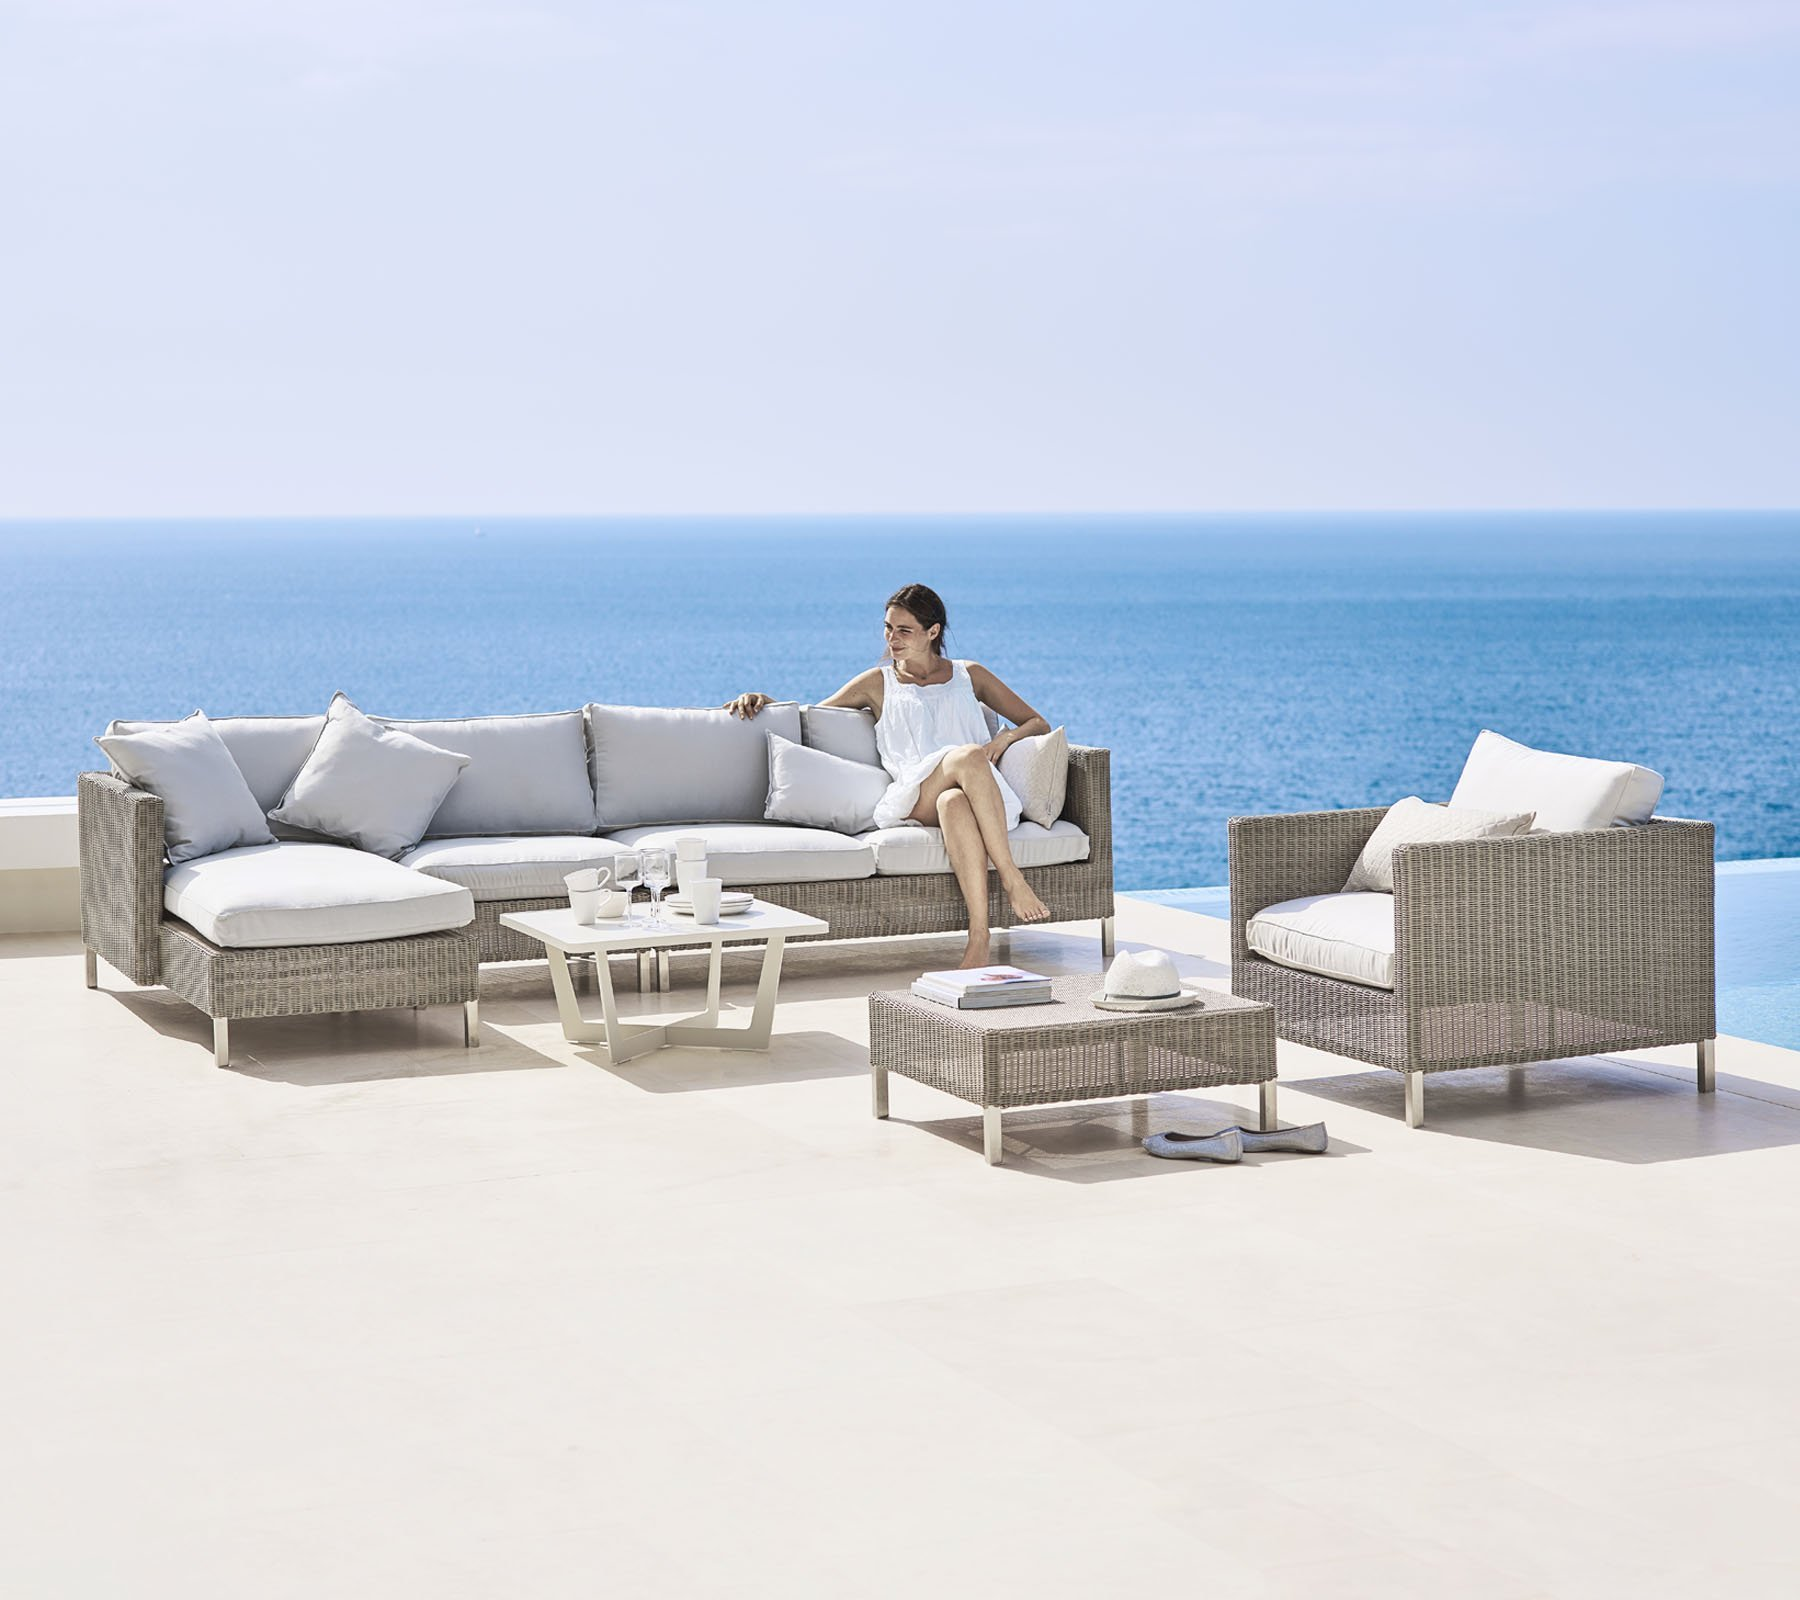 Connect 2 Seat Left Module Sofa modular from Cane-line, designed by Cane-line Design Team